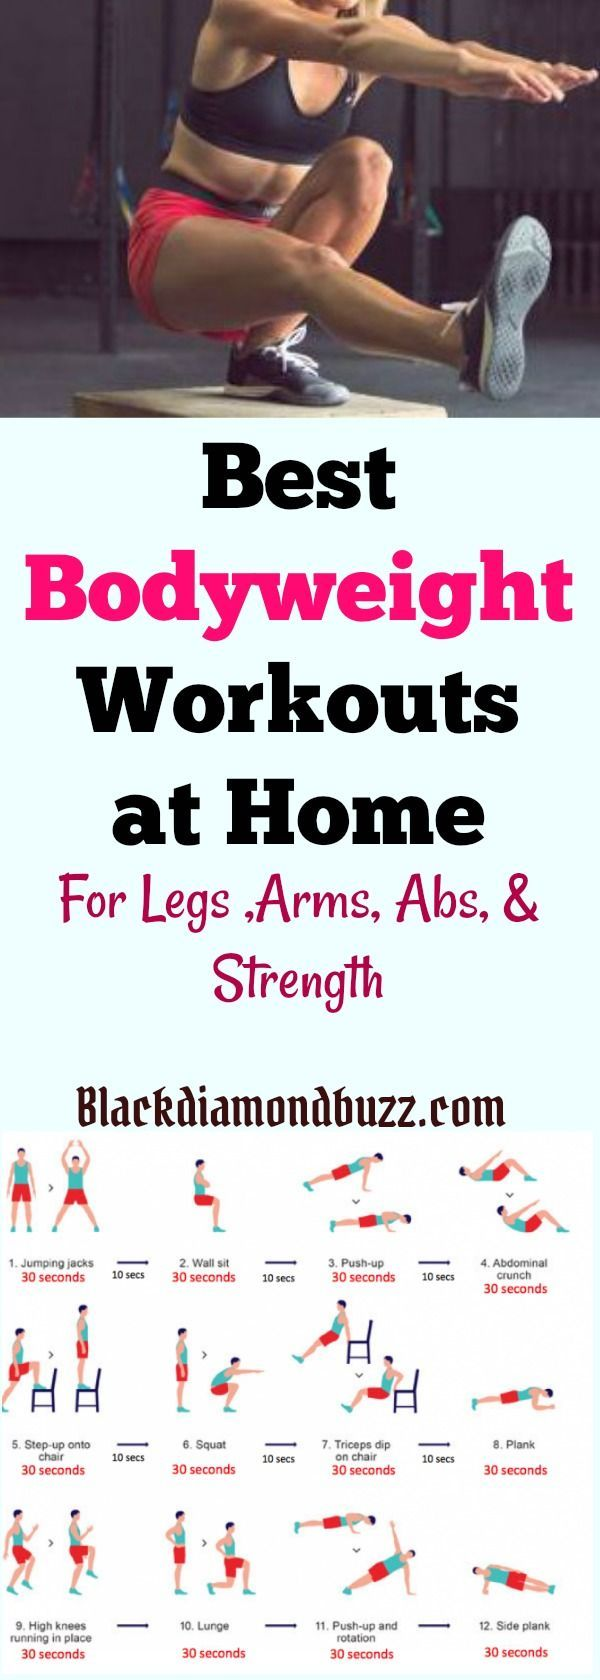 Best Bodyweight Exercises for Weight Loss at Home  For Legs Arms